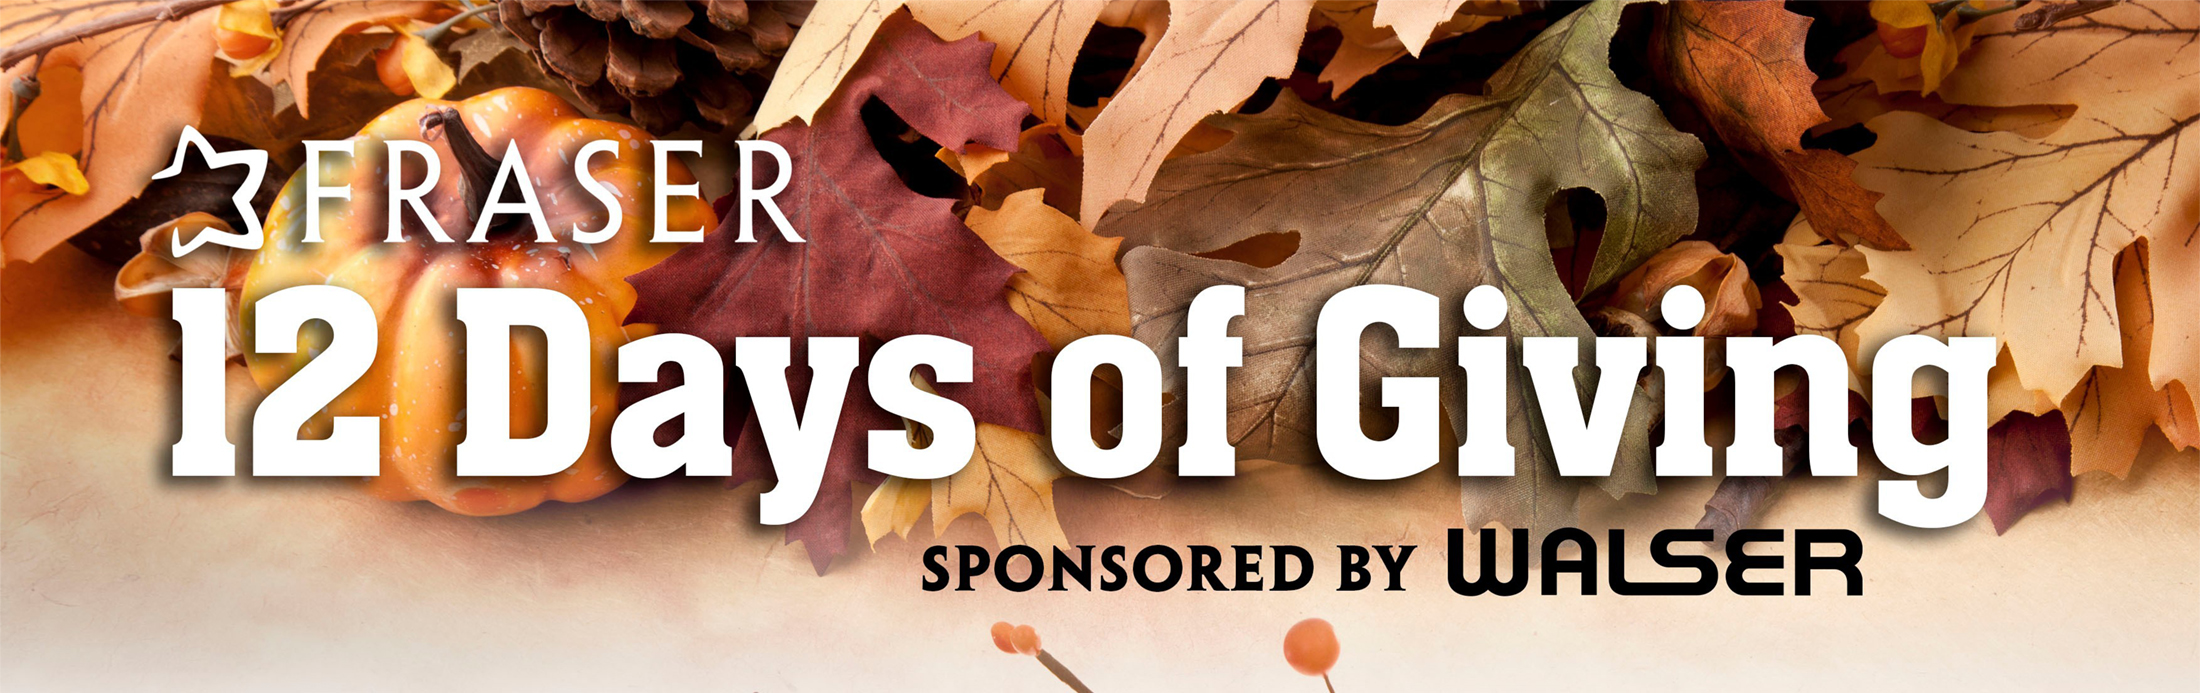 Fraser's 12 Days of Giving sponsored by Walser Automotive Group